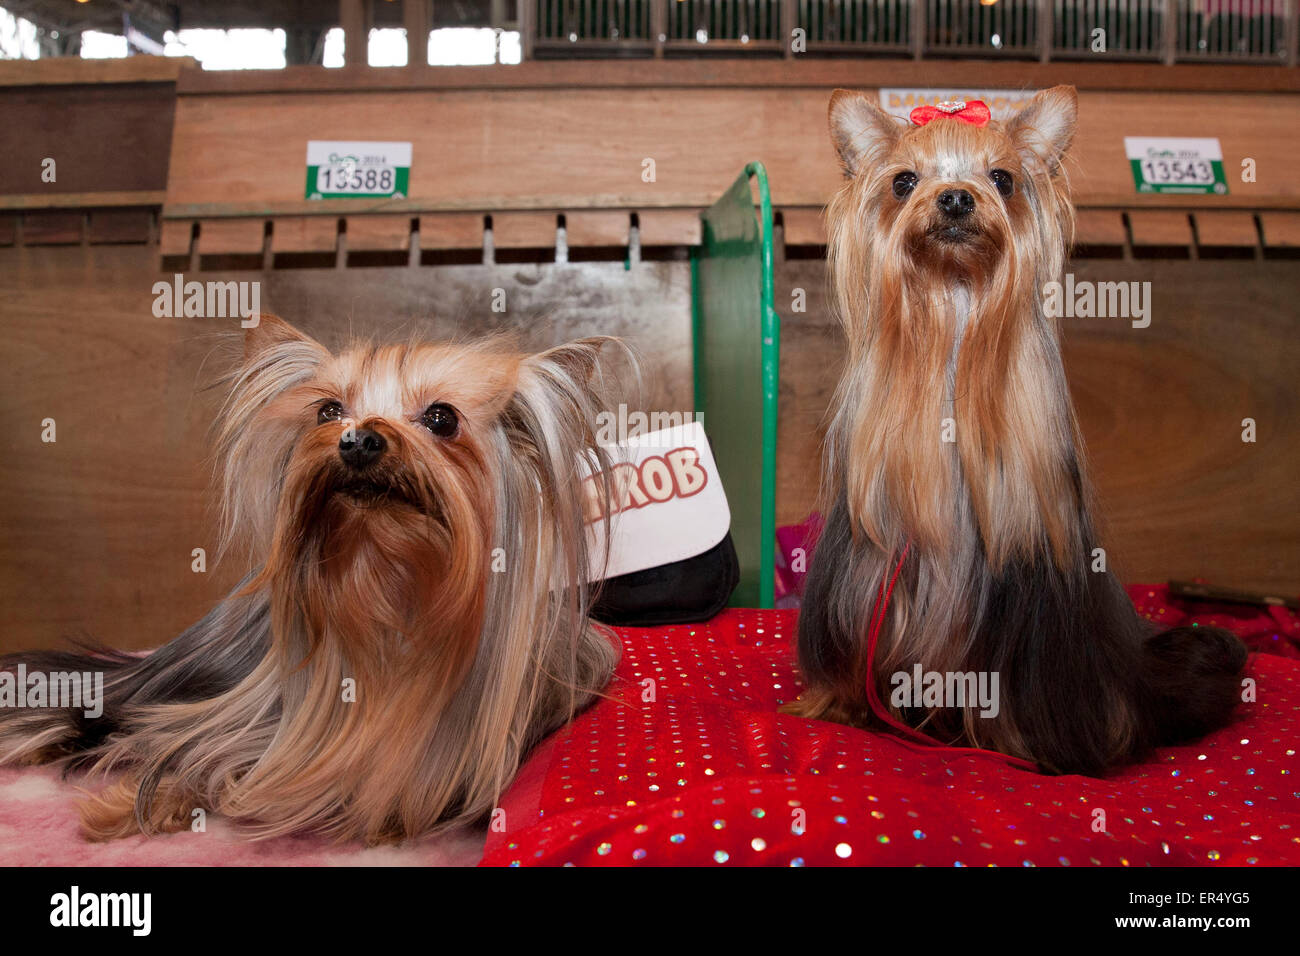 Two toy Yorkshire terriers. Crufts 2014 at the NEC in Birmingham, UK. 8th March 2014 - Stock Image